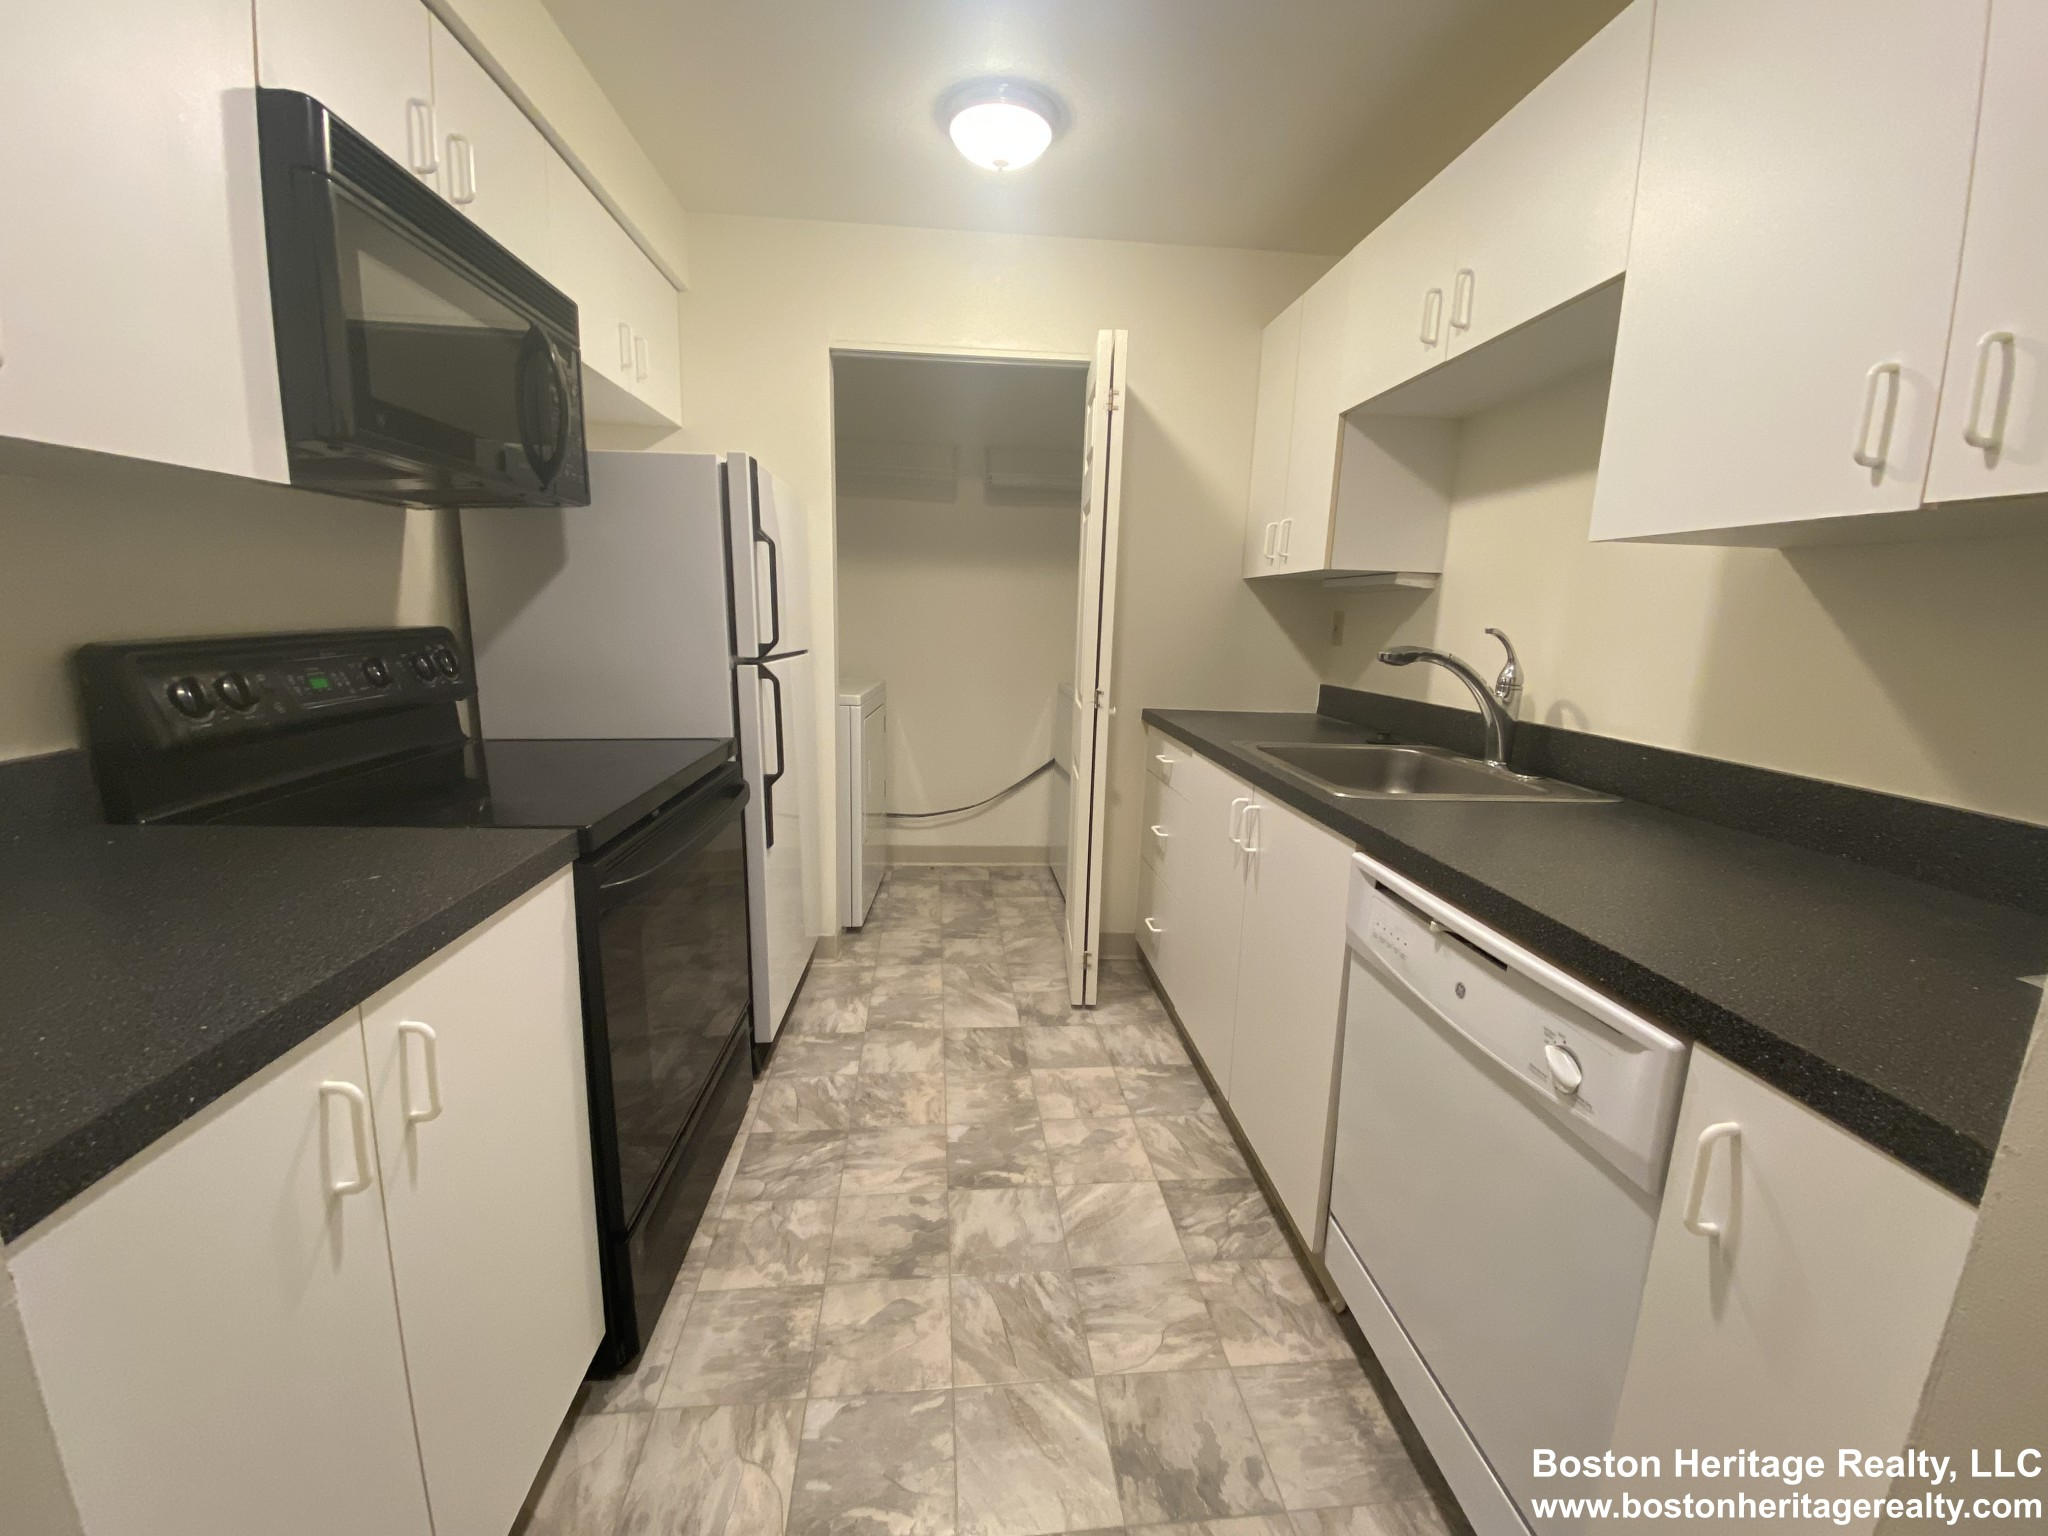 1 Bed, 1 Bath apartment in Boston, South End for $2,450